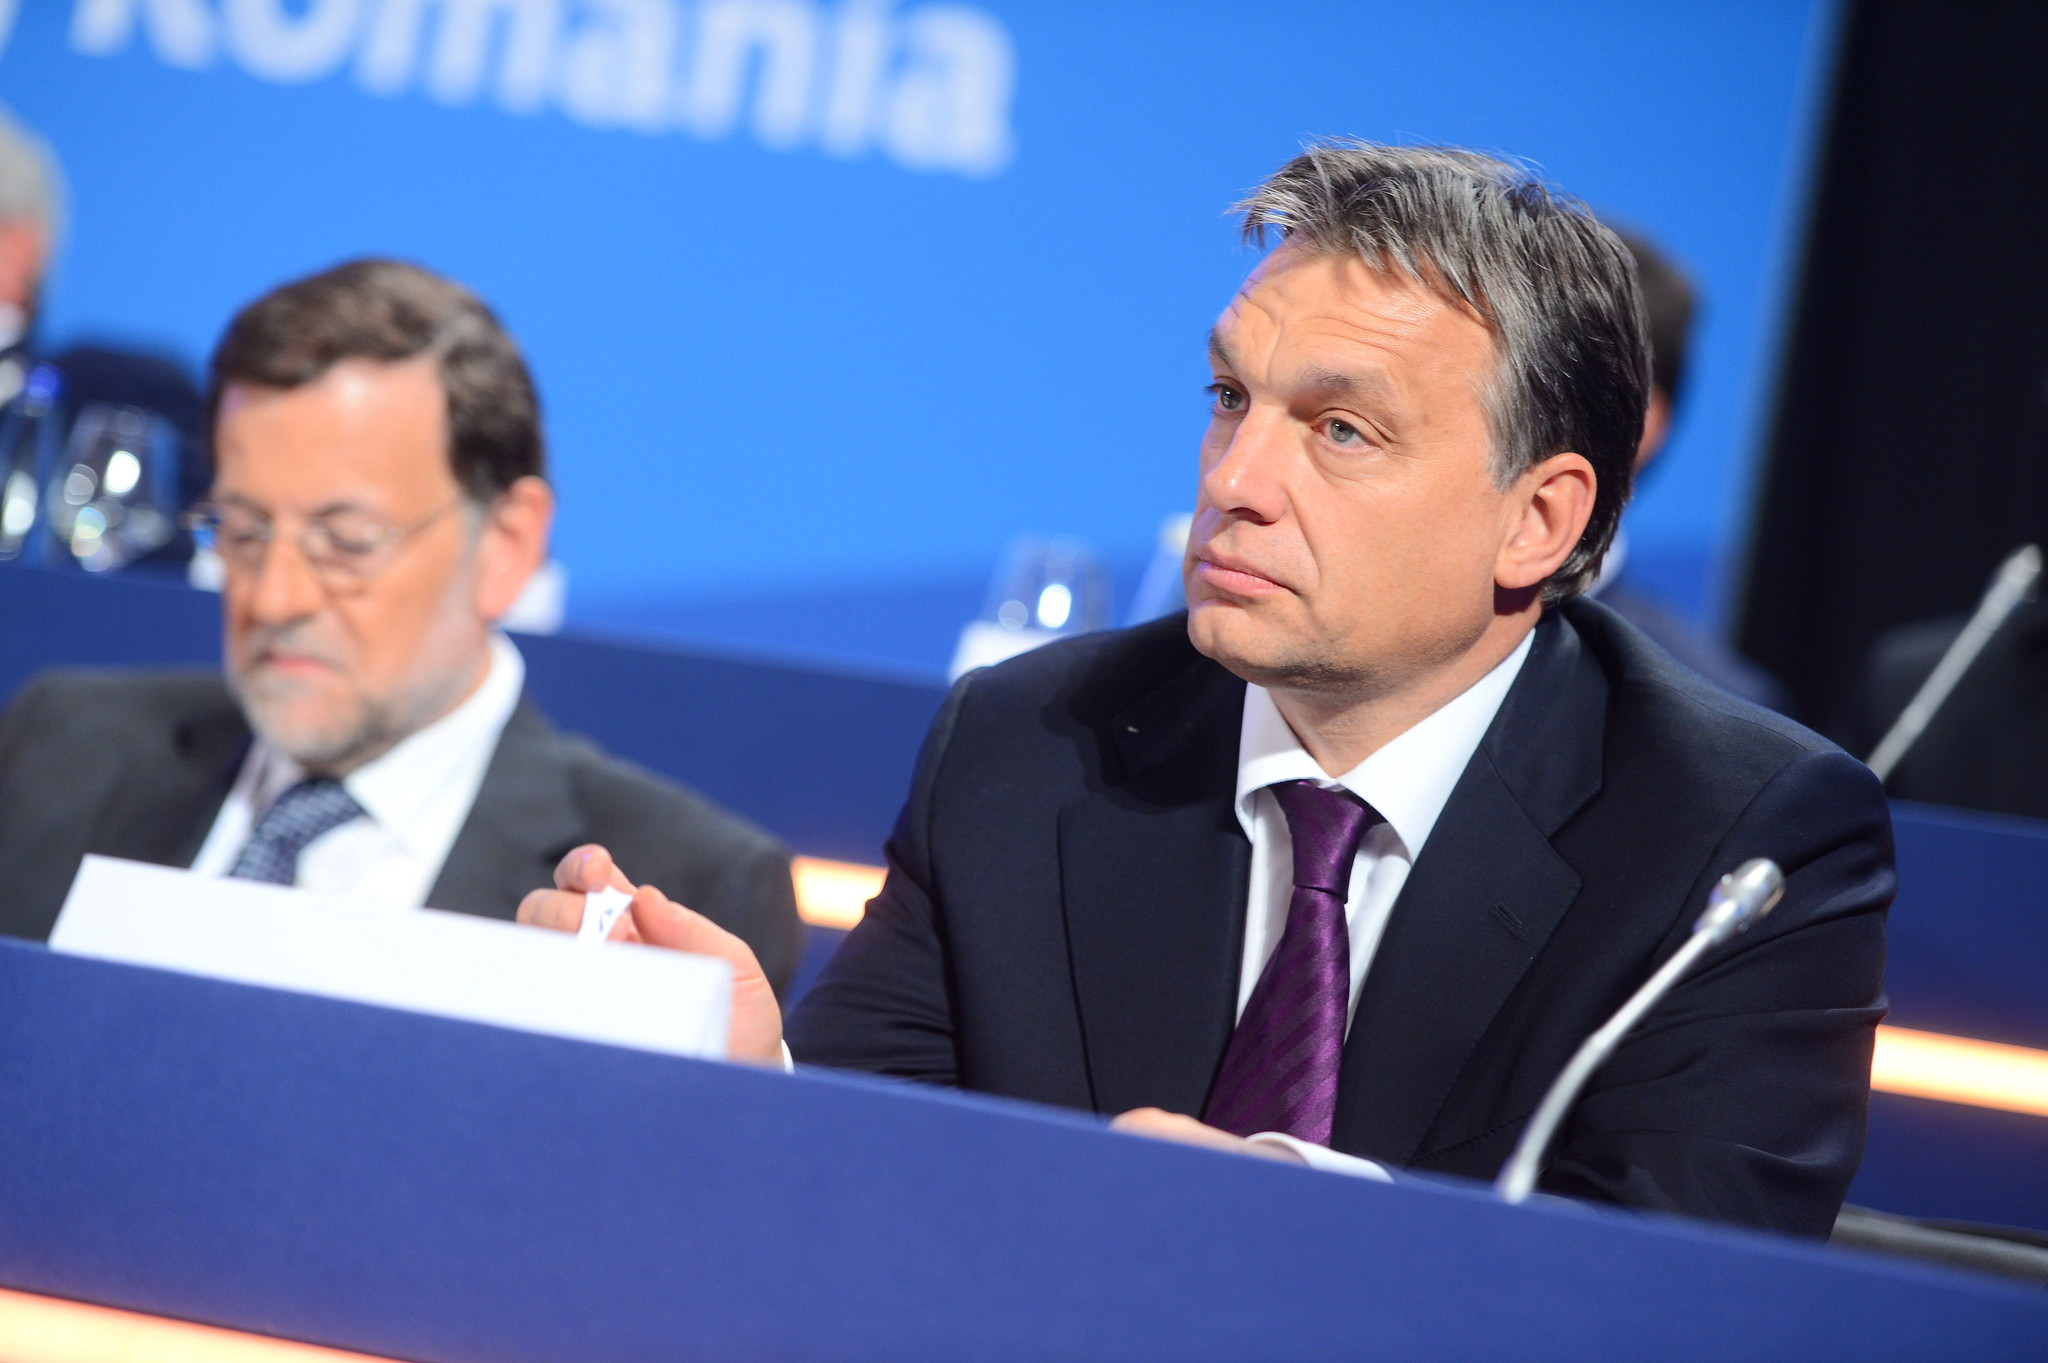 Will 2022 See The End Of Orbán's Rule?